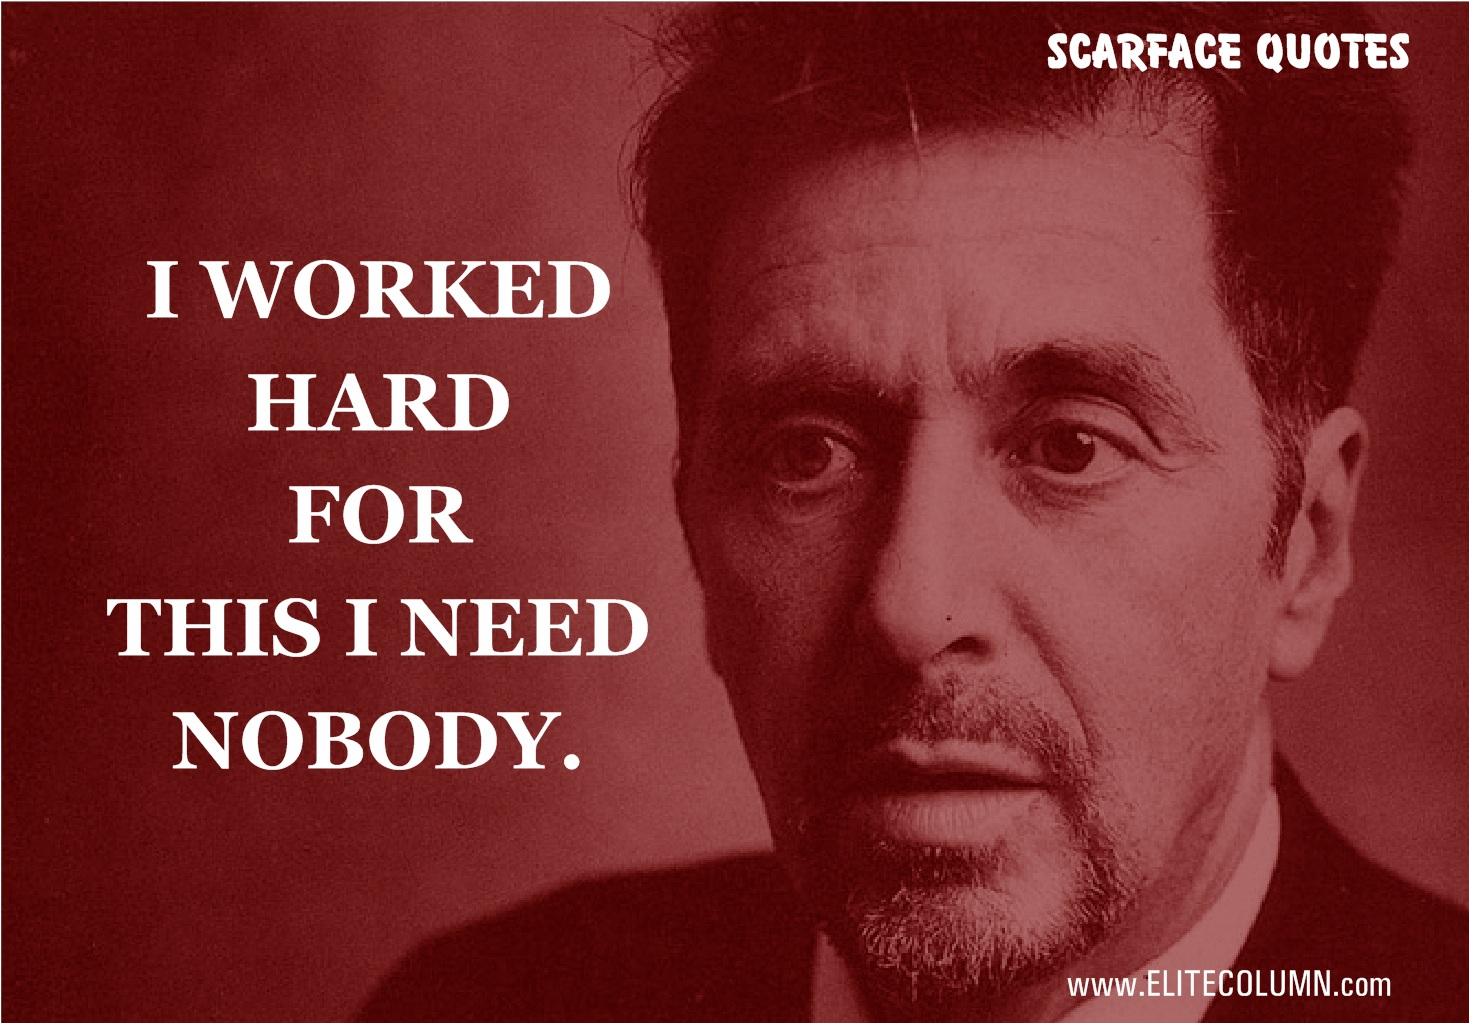 Scarface Quotes (13)